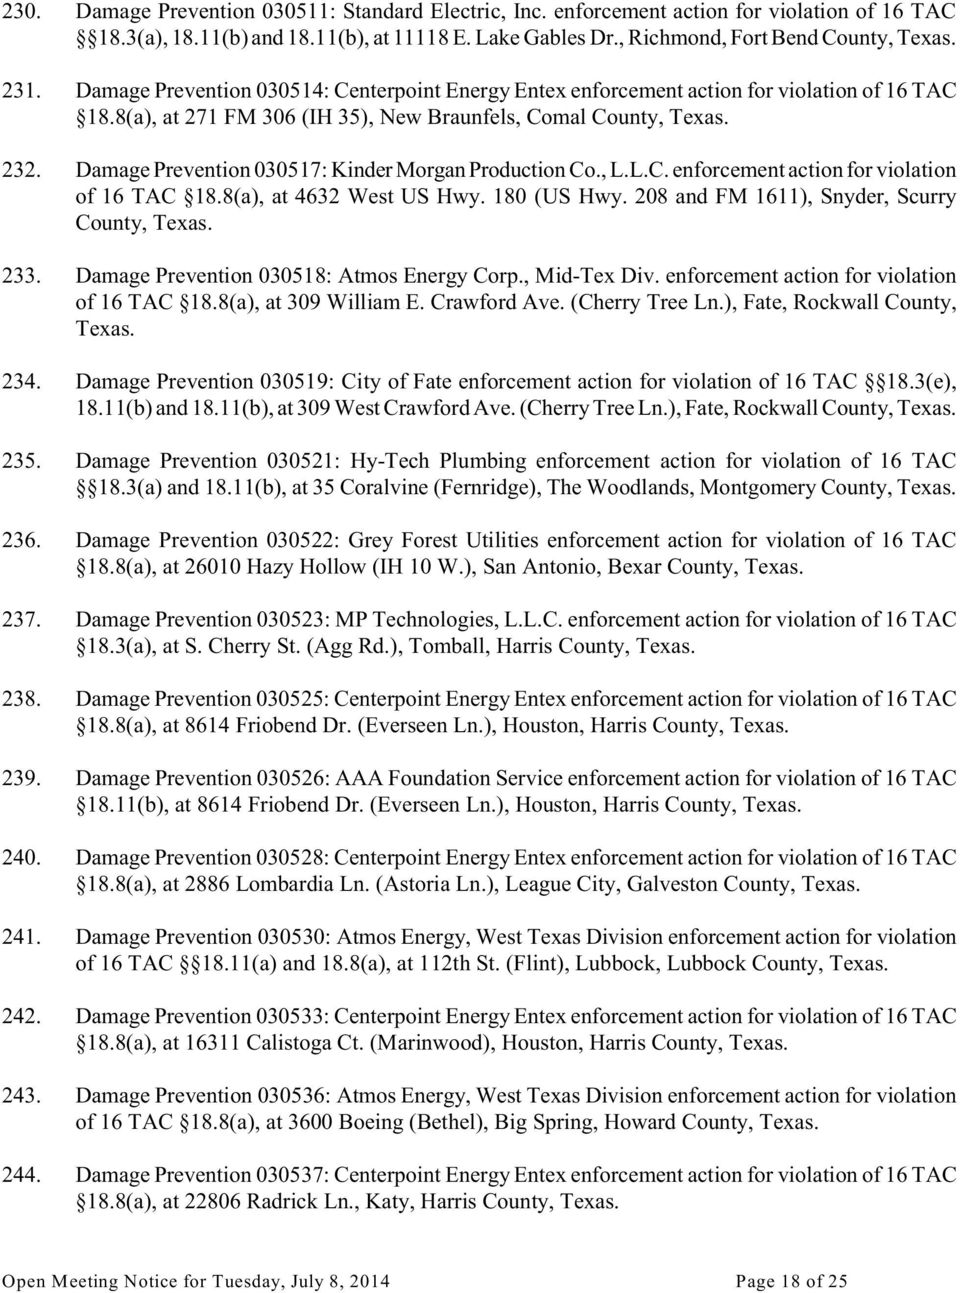 Notice Of Meeting Railroad Commission Of Texas Pdf